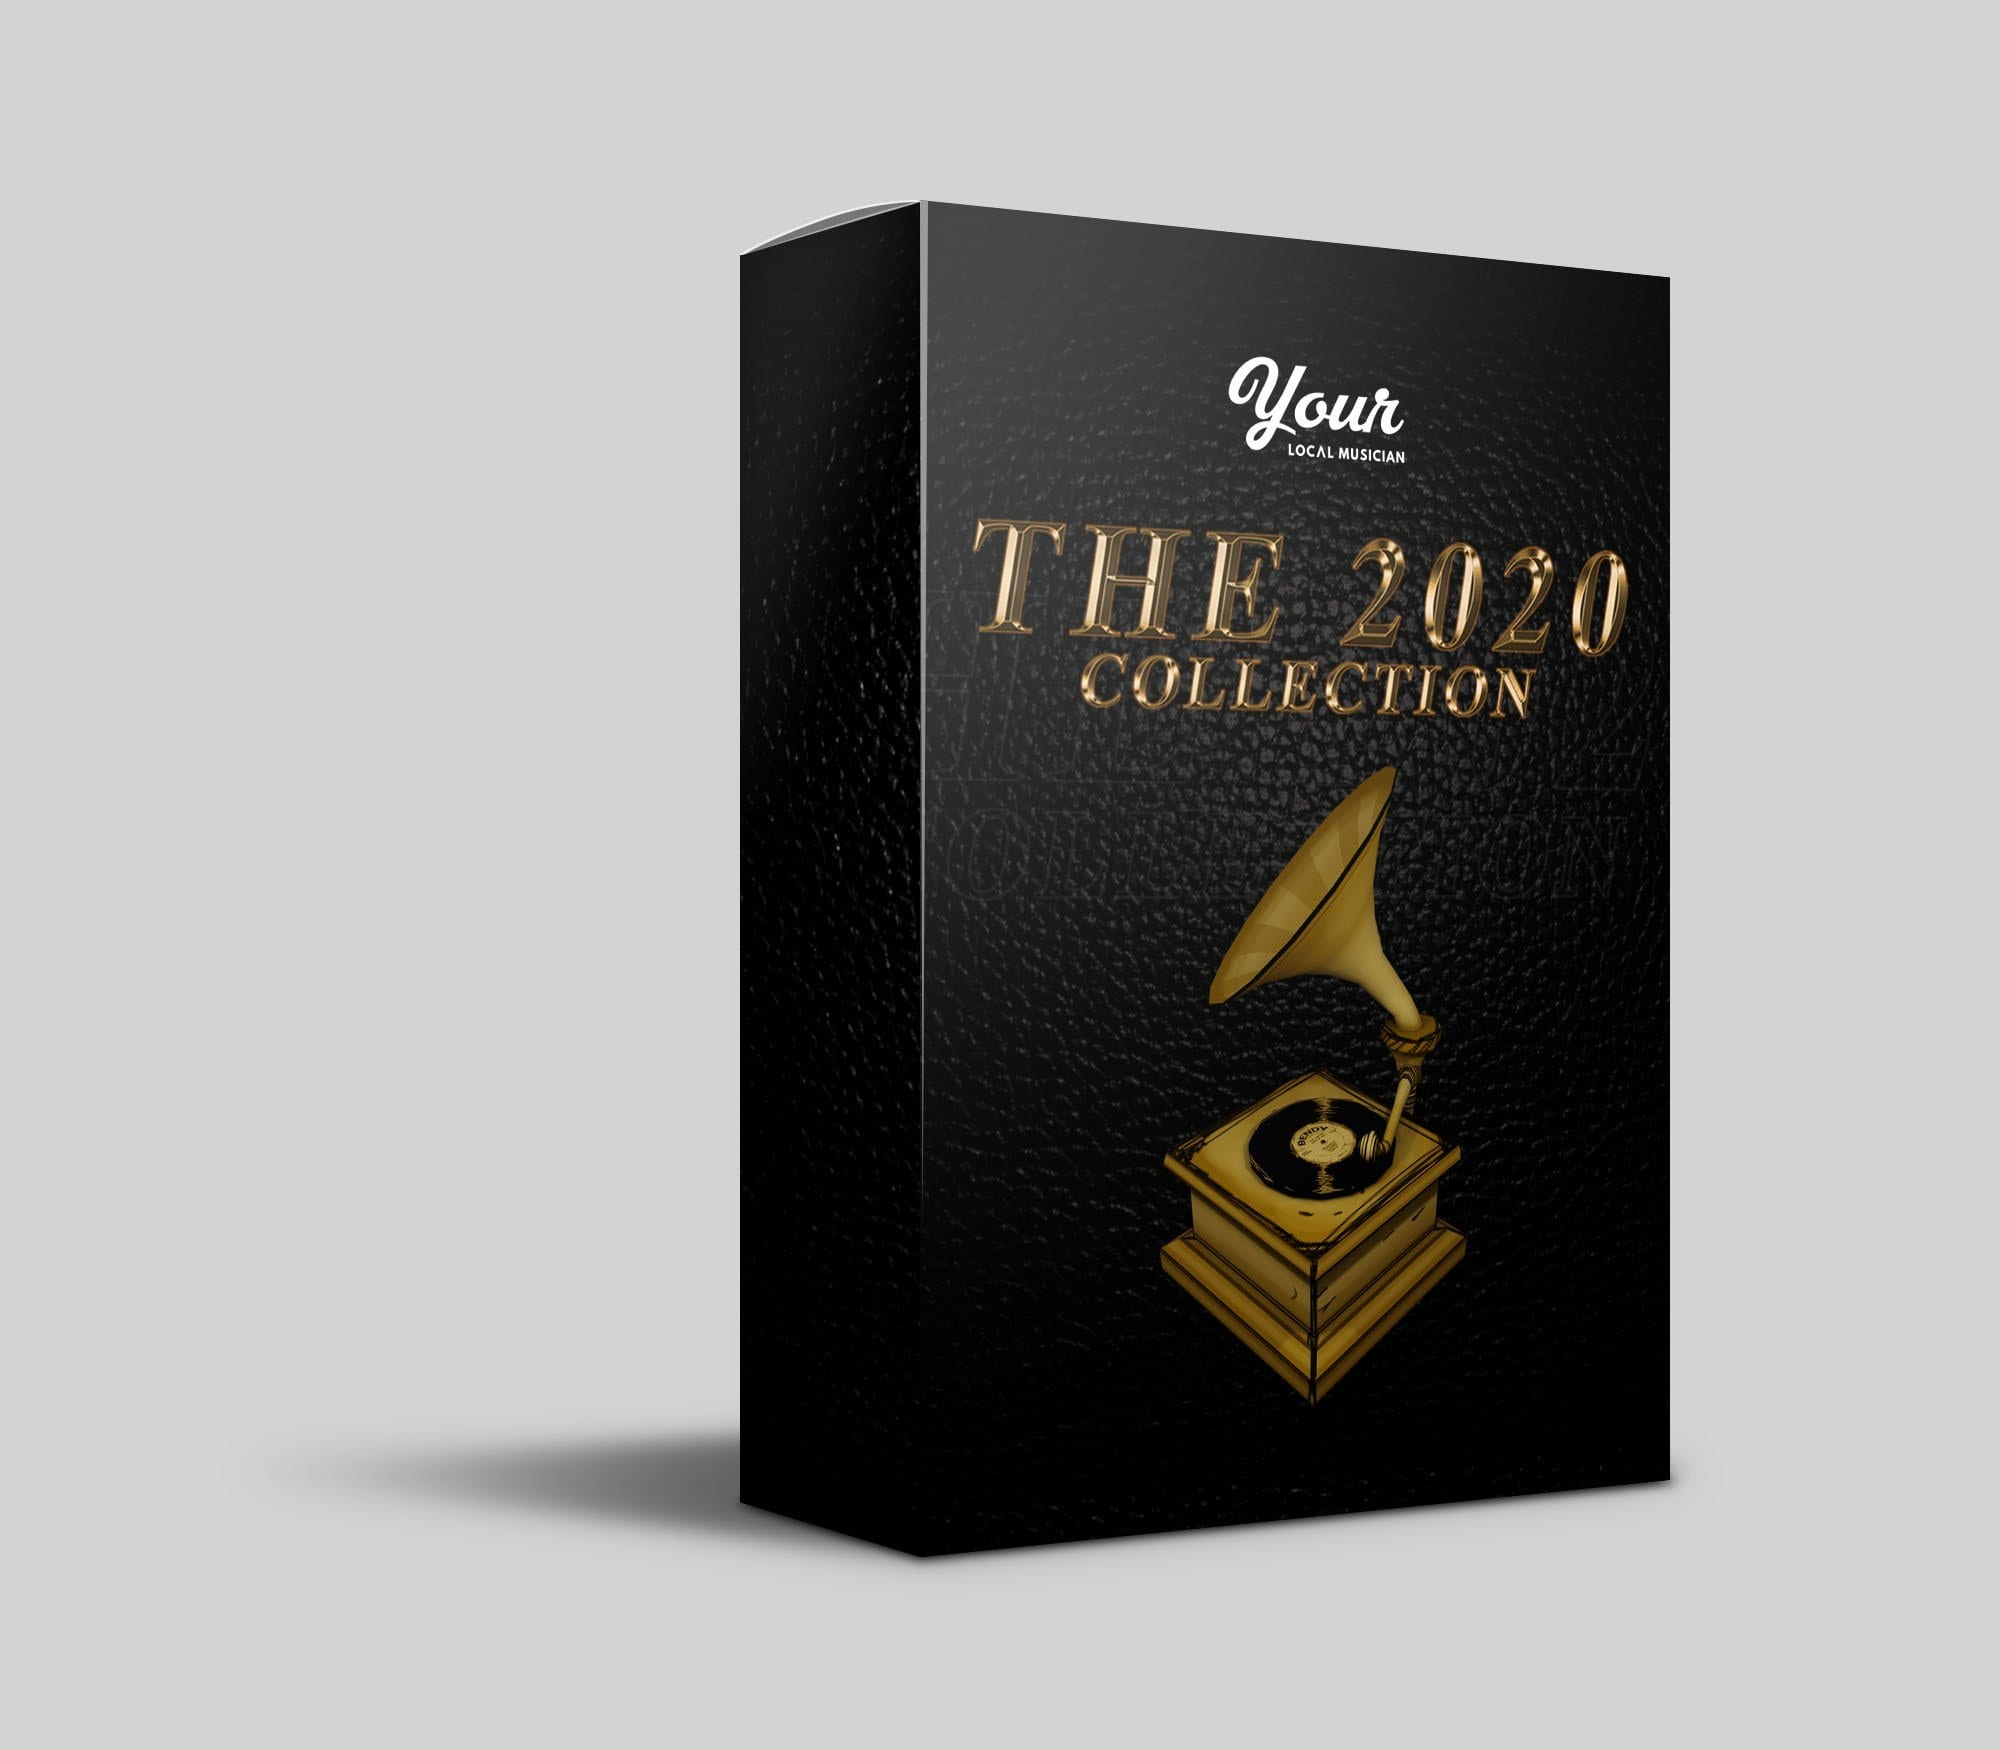 the 2020 collection